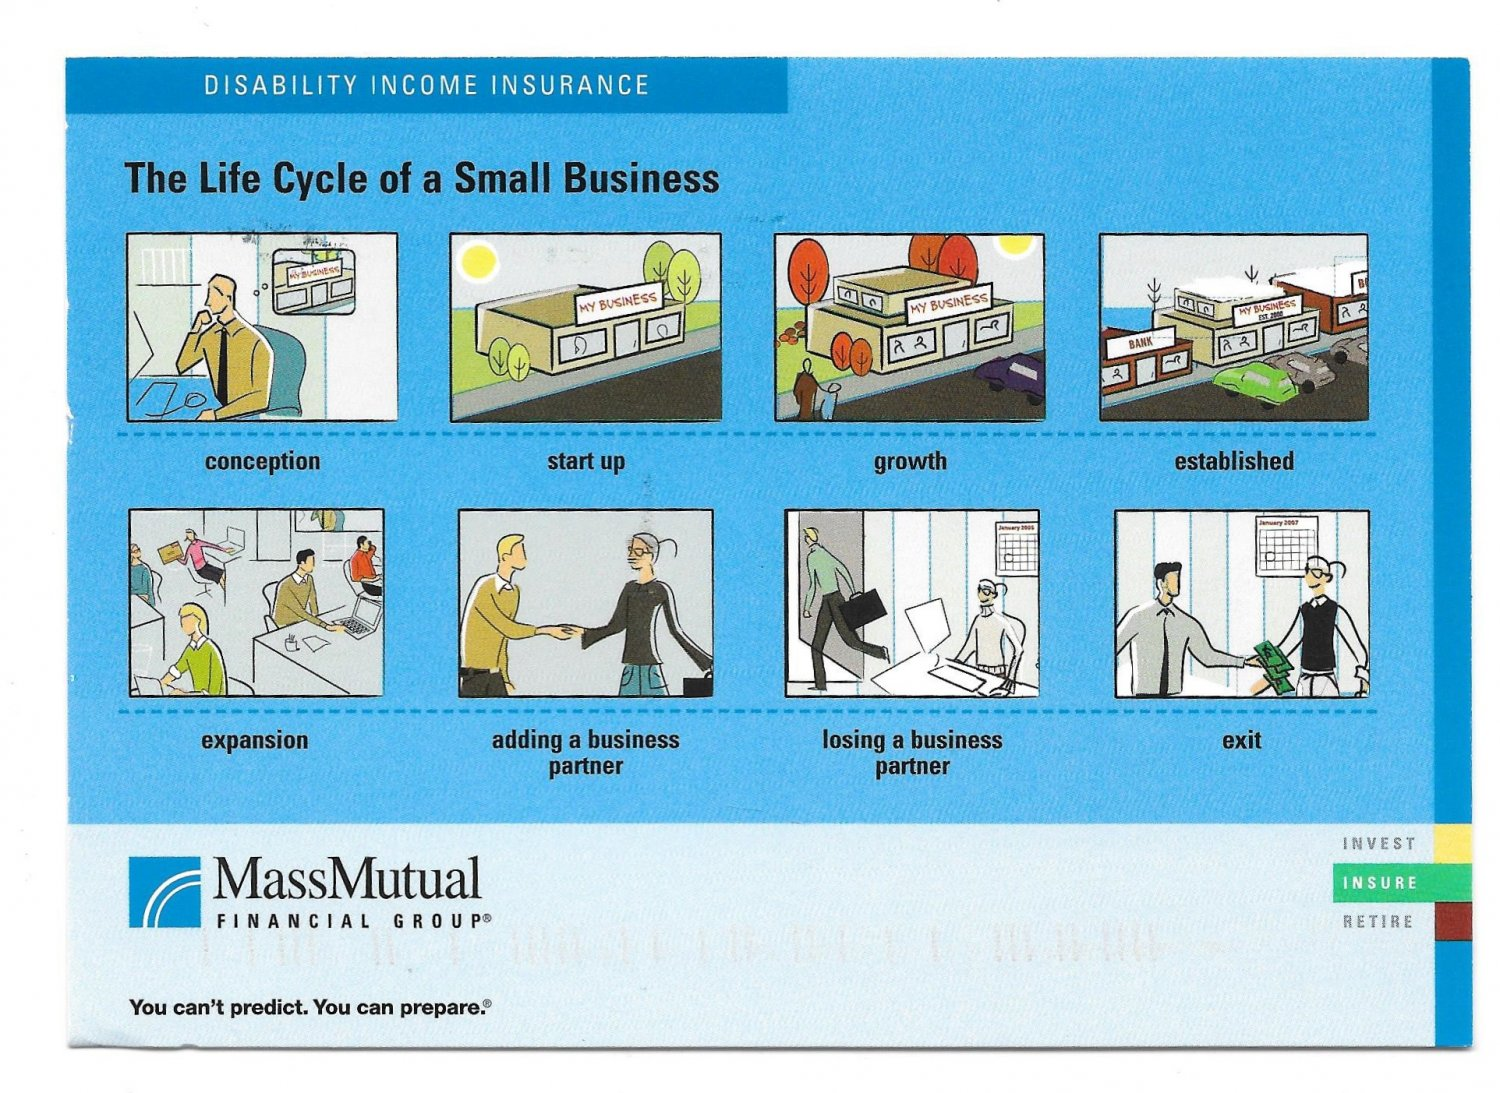 Insurance Advertising Postcard Mass Mutual Life cycle of a Small Business 4X6 AD